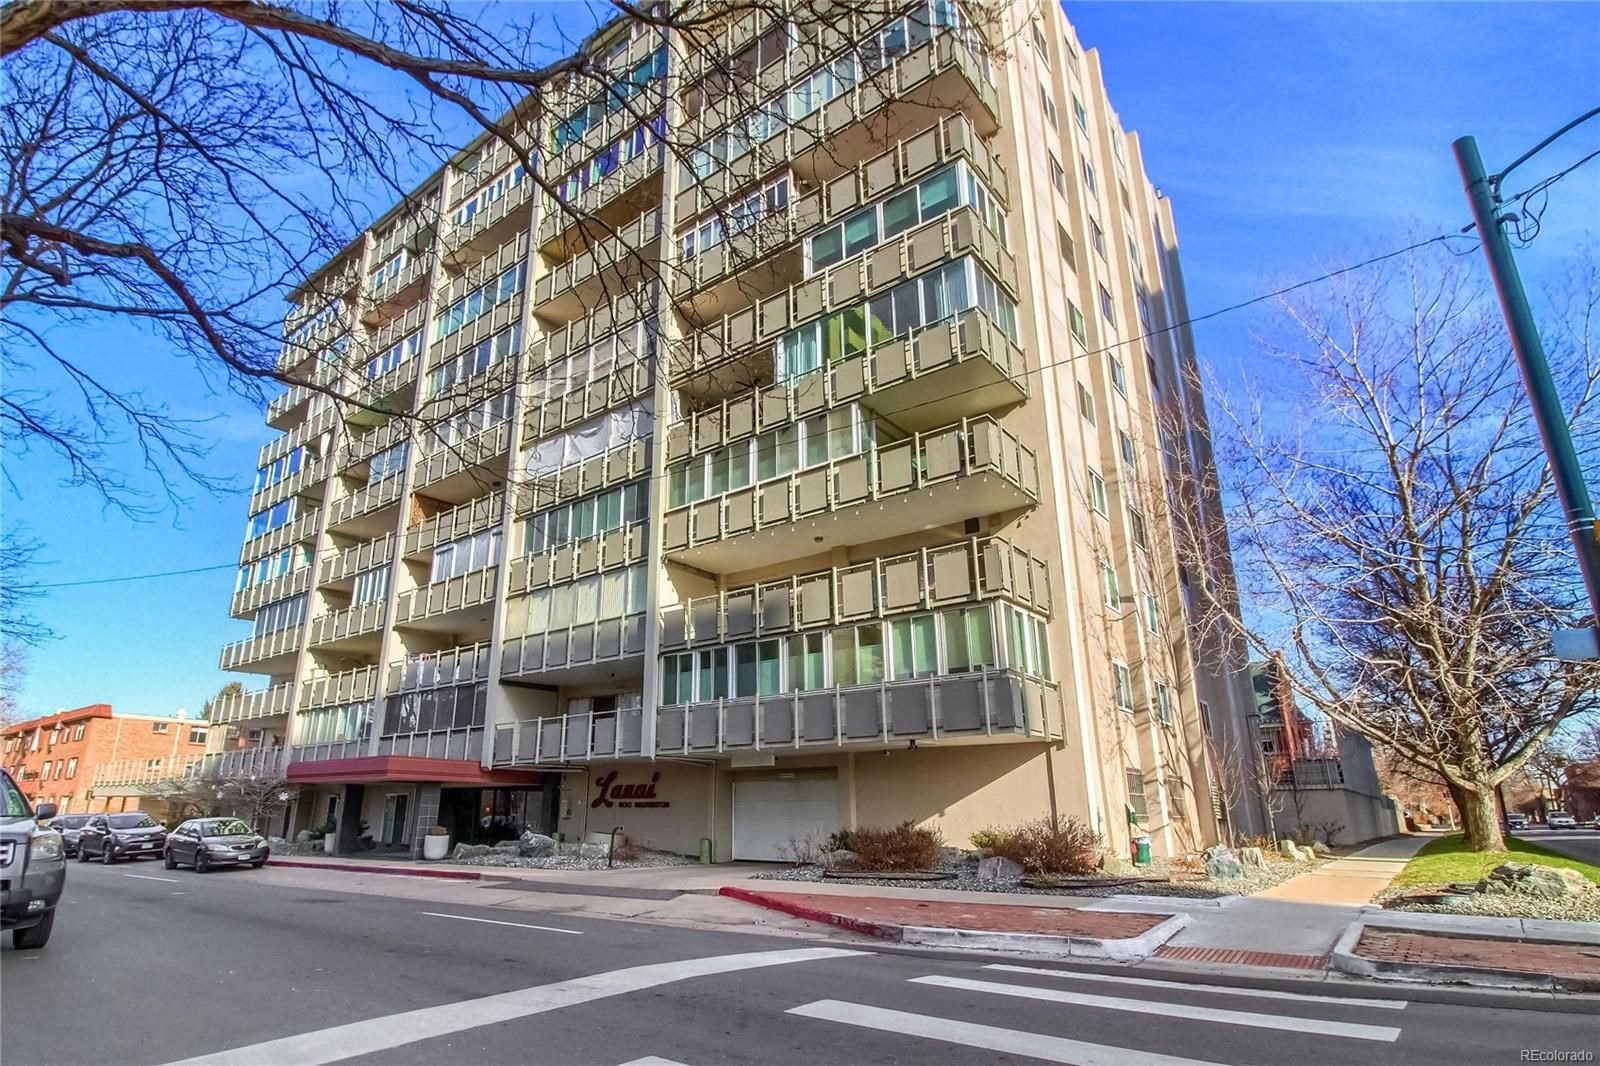 MLS# 5045889 - 4 - 800 N Washington Street #905, Denver, CO 80203